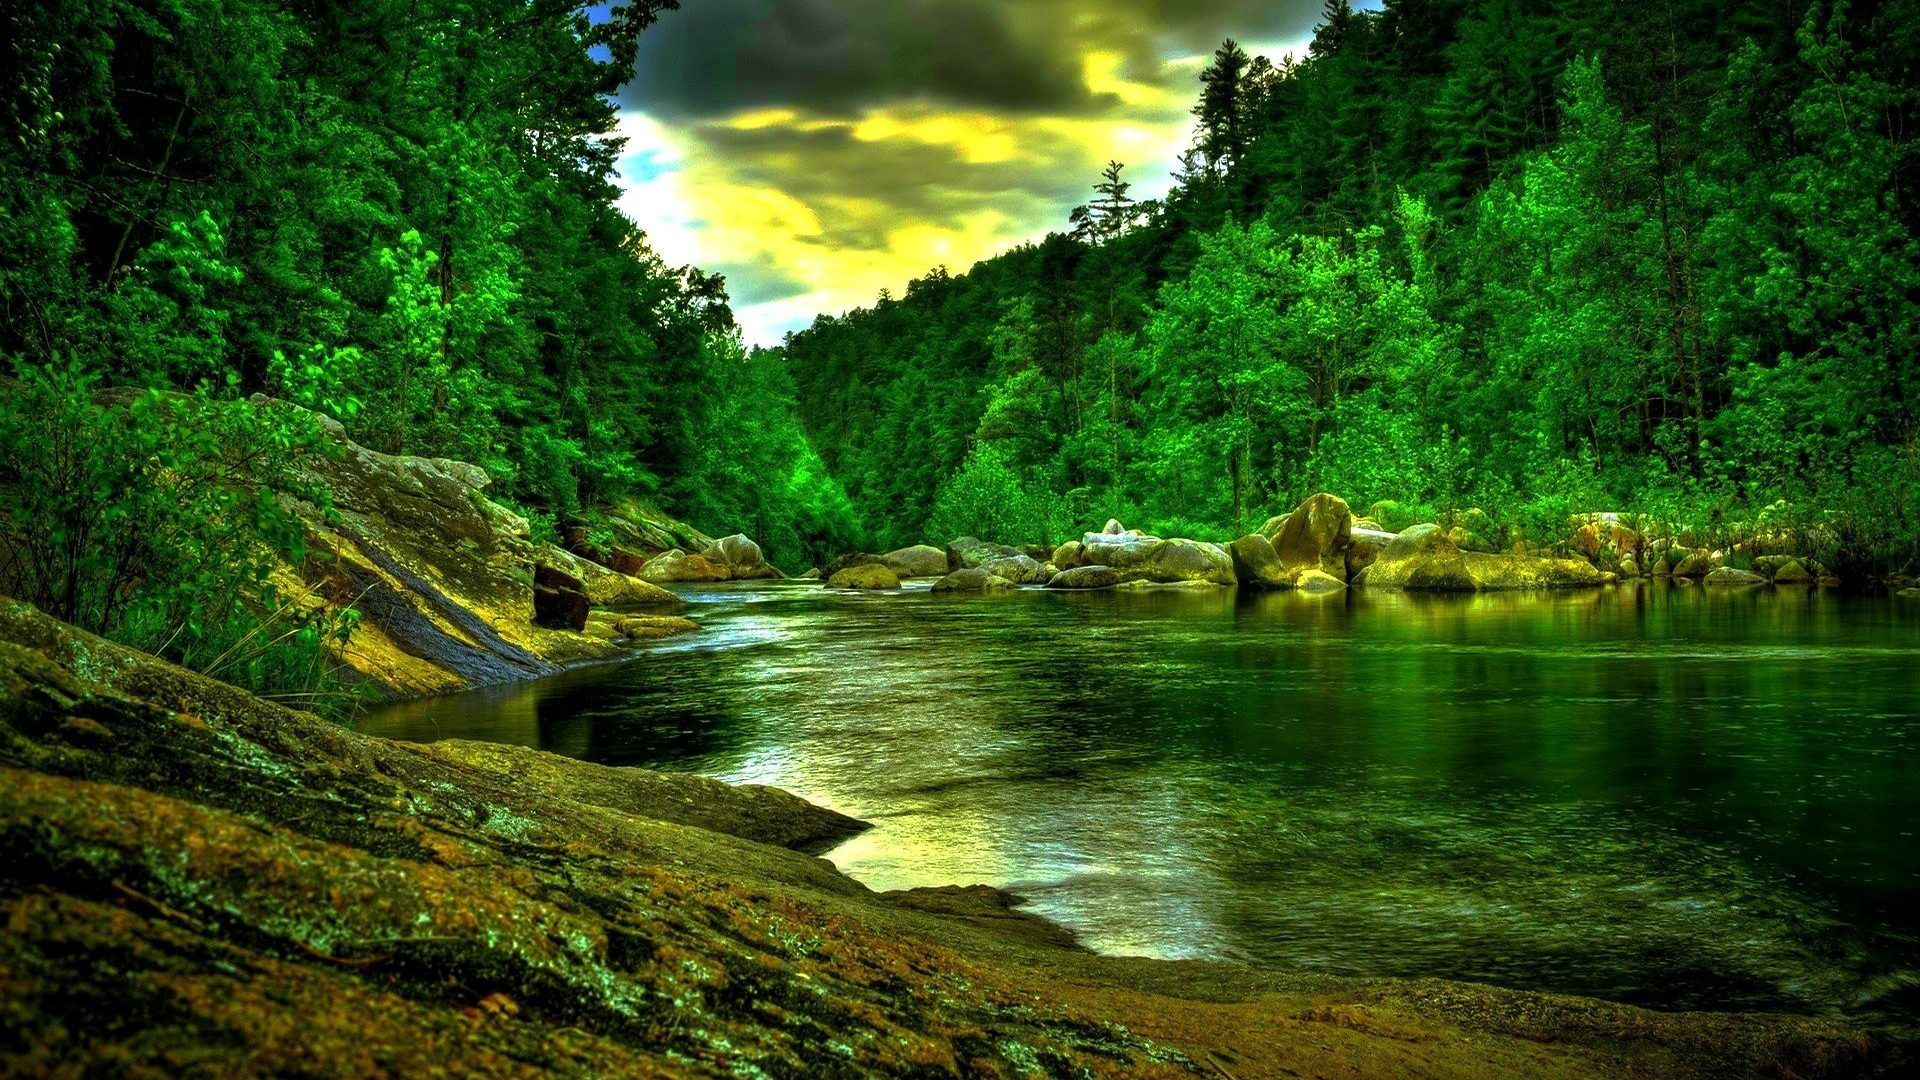 Nature Computer Full Screen Nature Computer Desktop Wallpaper Hd